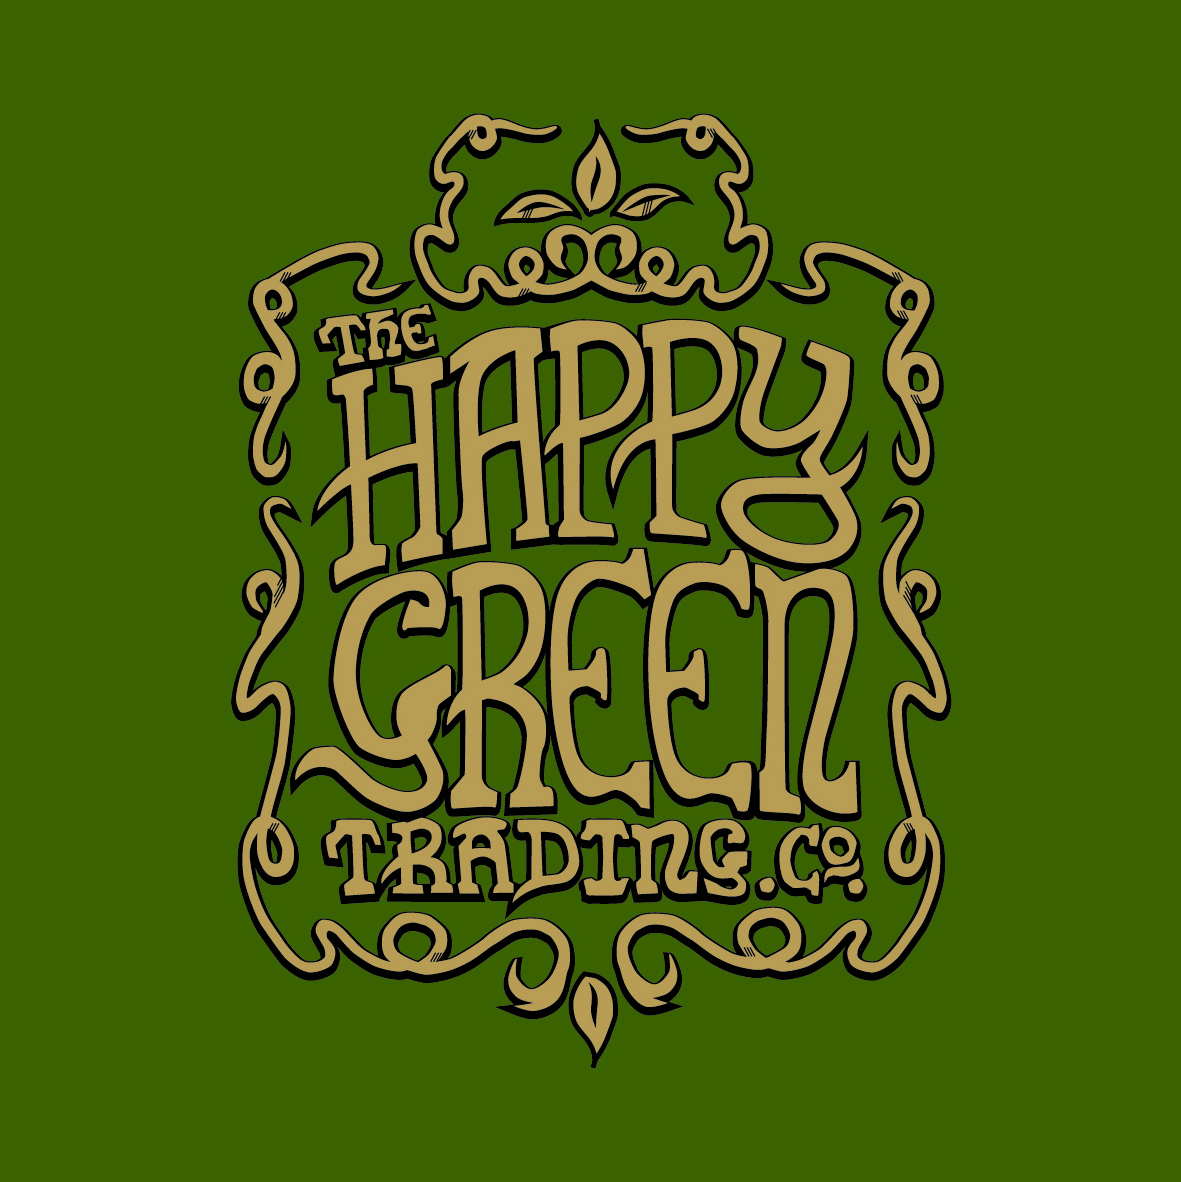 The Happy Green Trading Company Ltd